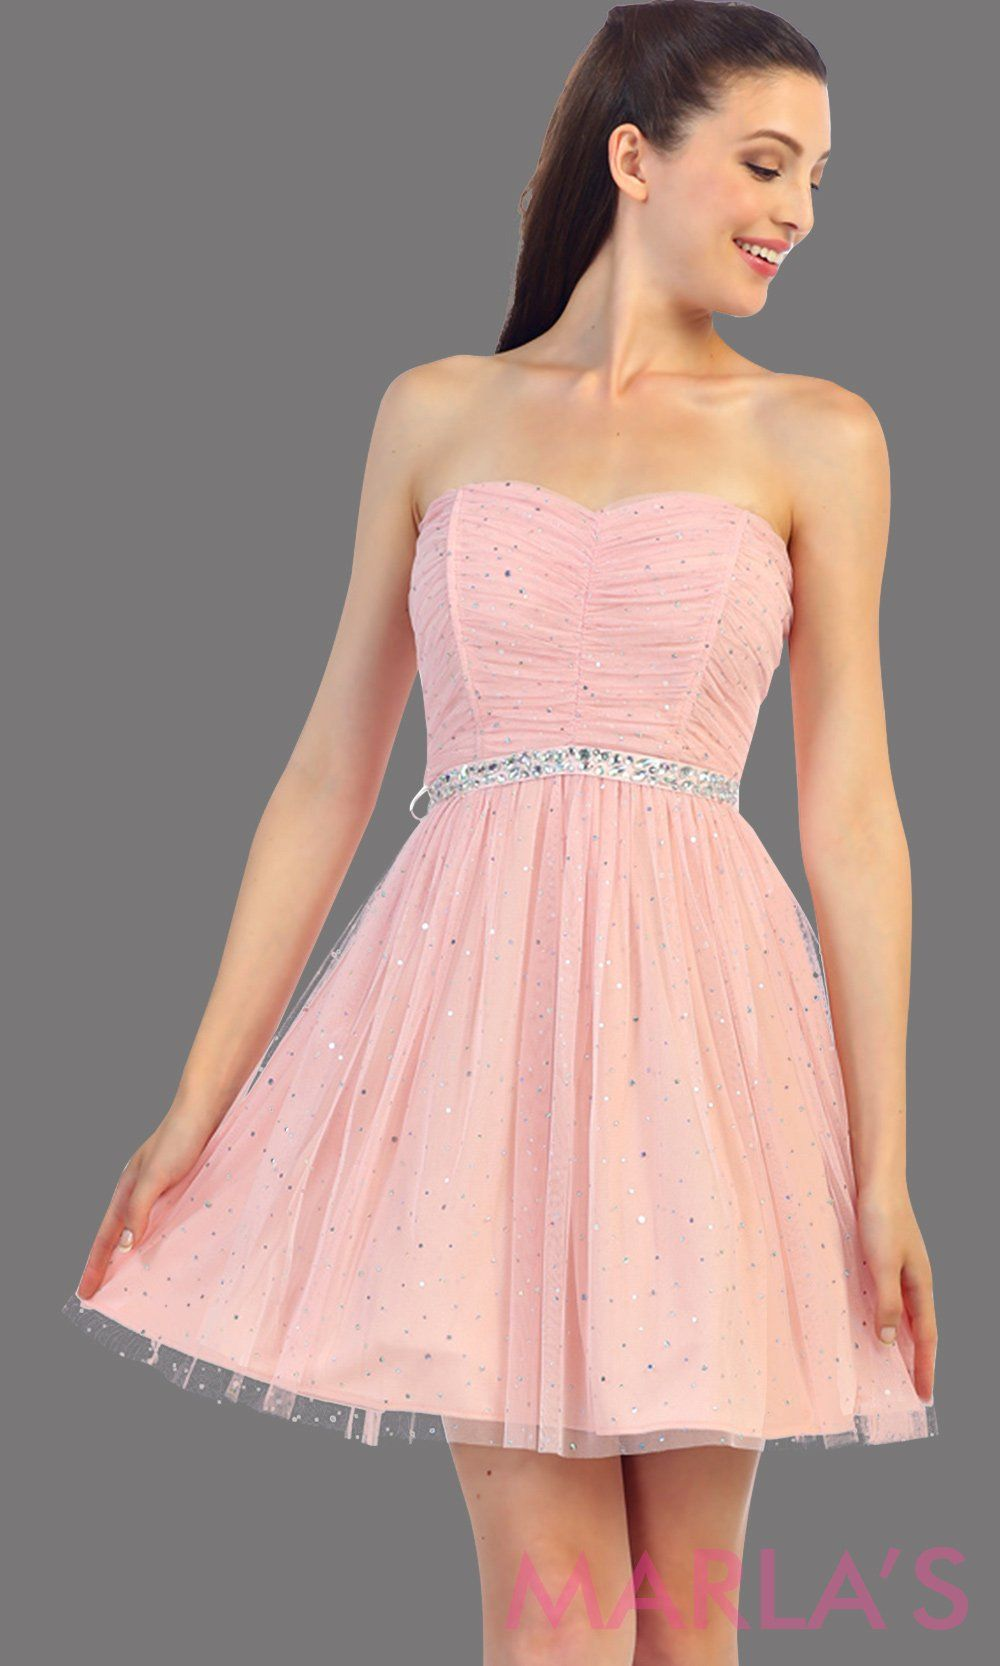 Short strapless pink dress with removable satin belt. The sheer mesh and light fabric has glitter within it. This is the perfect blush grade 8 graduation dress, damas dress, confirmation dress, or even homecoming dress